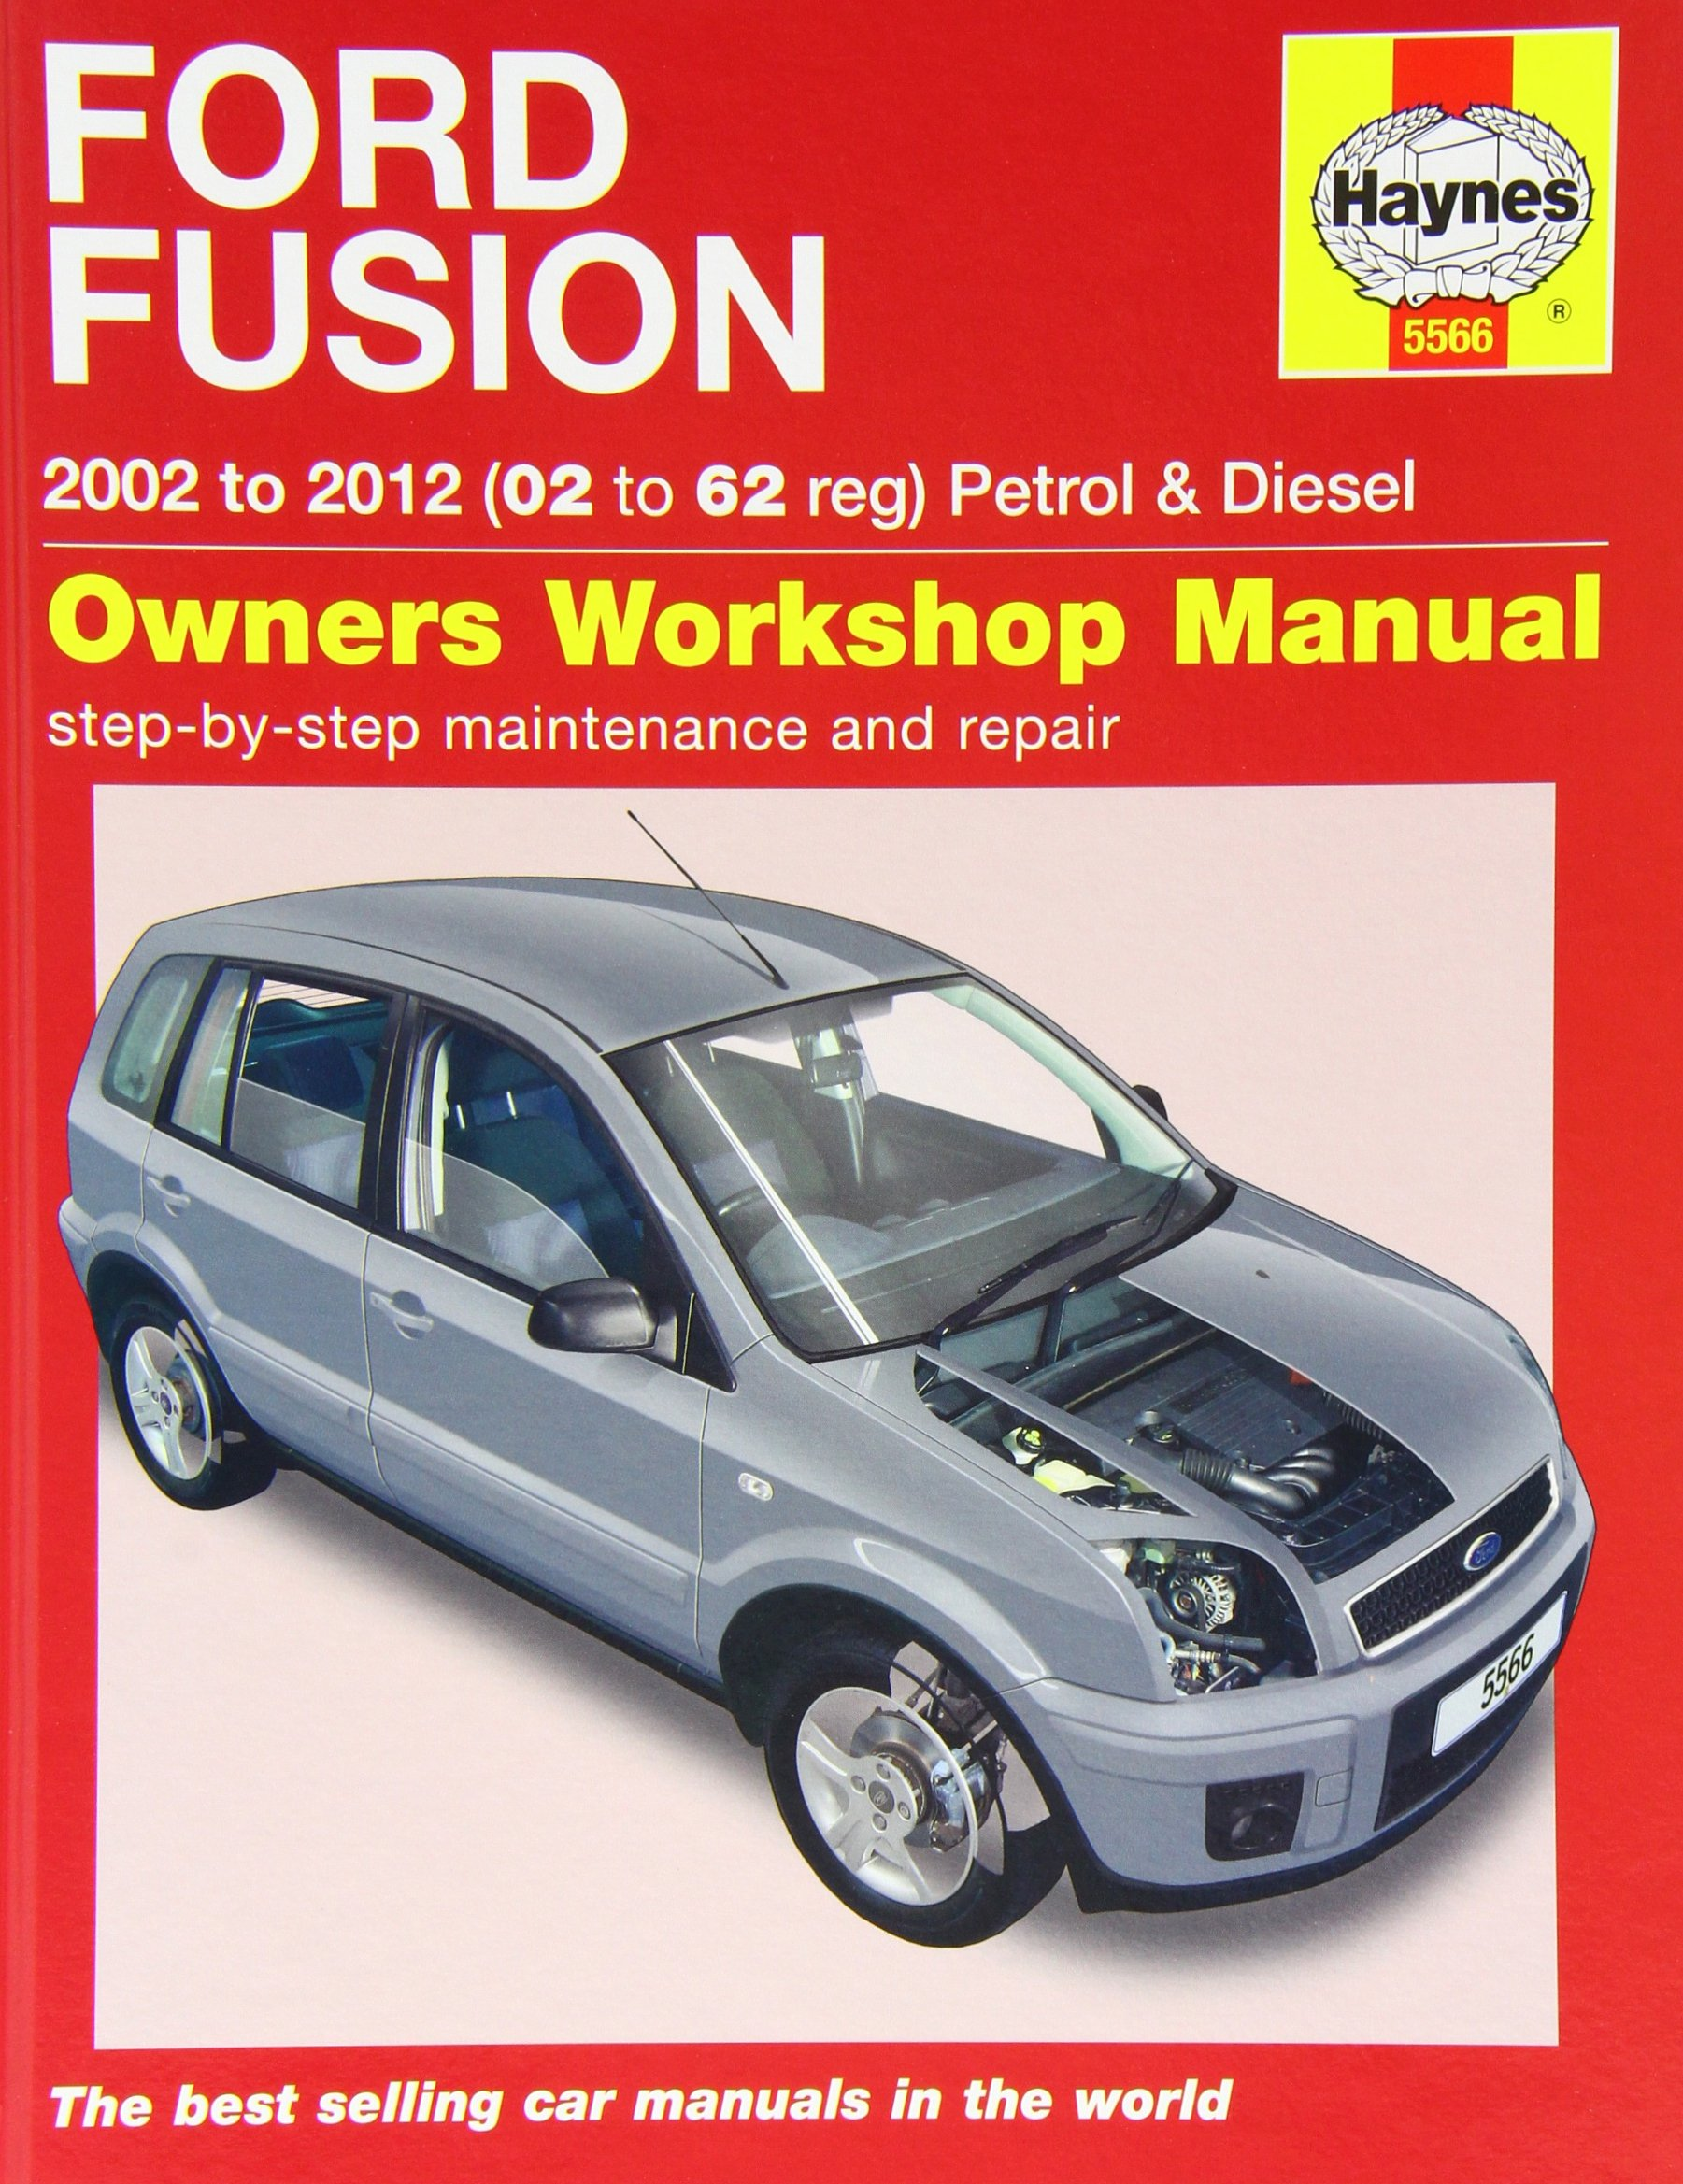 Buy Ford Fusion Service and Repair Manual: 2002-2012 (Haynes Service and  Repair Manuals) Book Online at Low Prices in India | Ford Fusion Service  and Repair ...